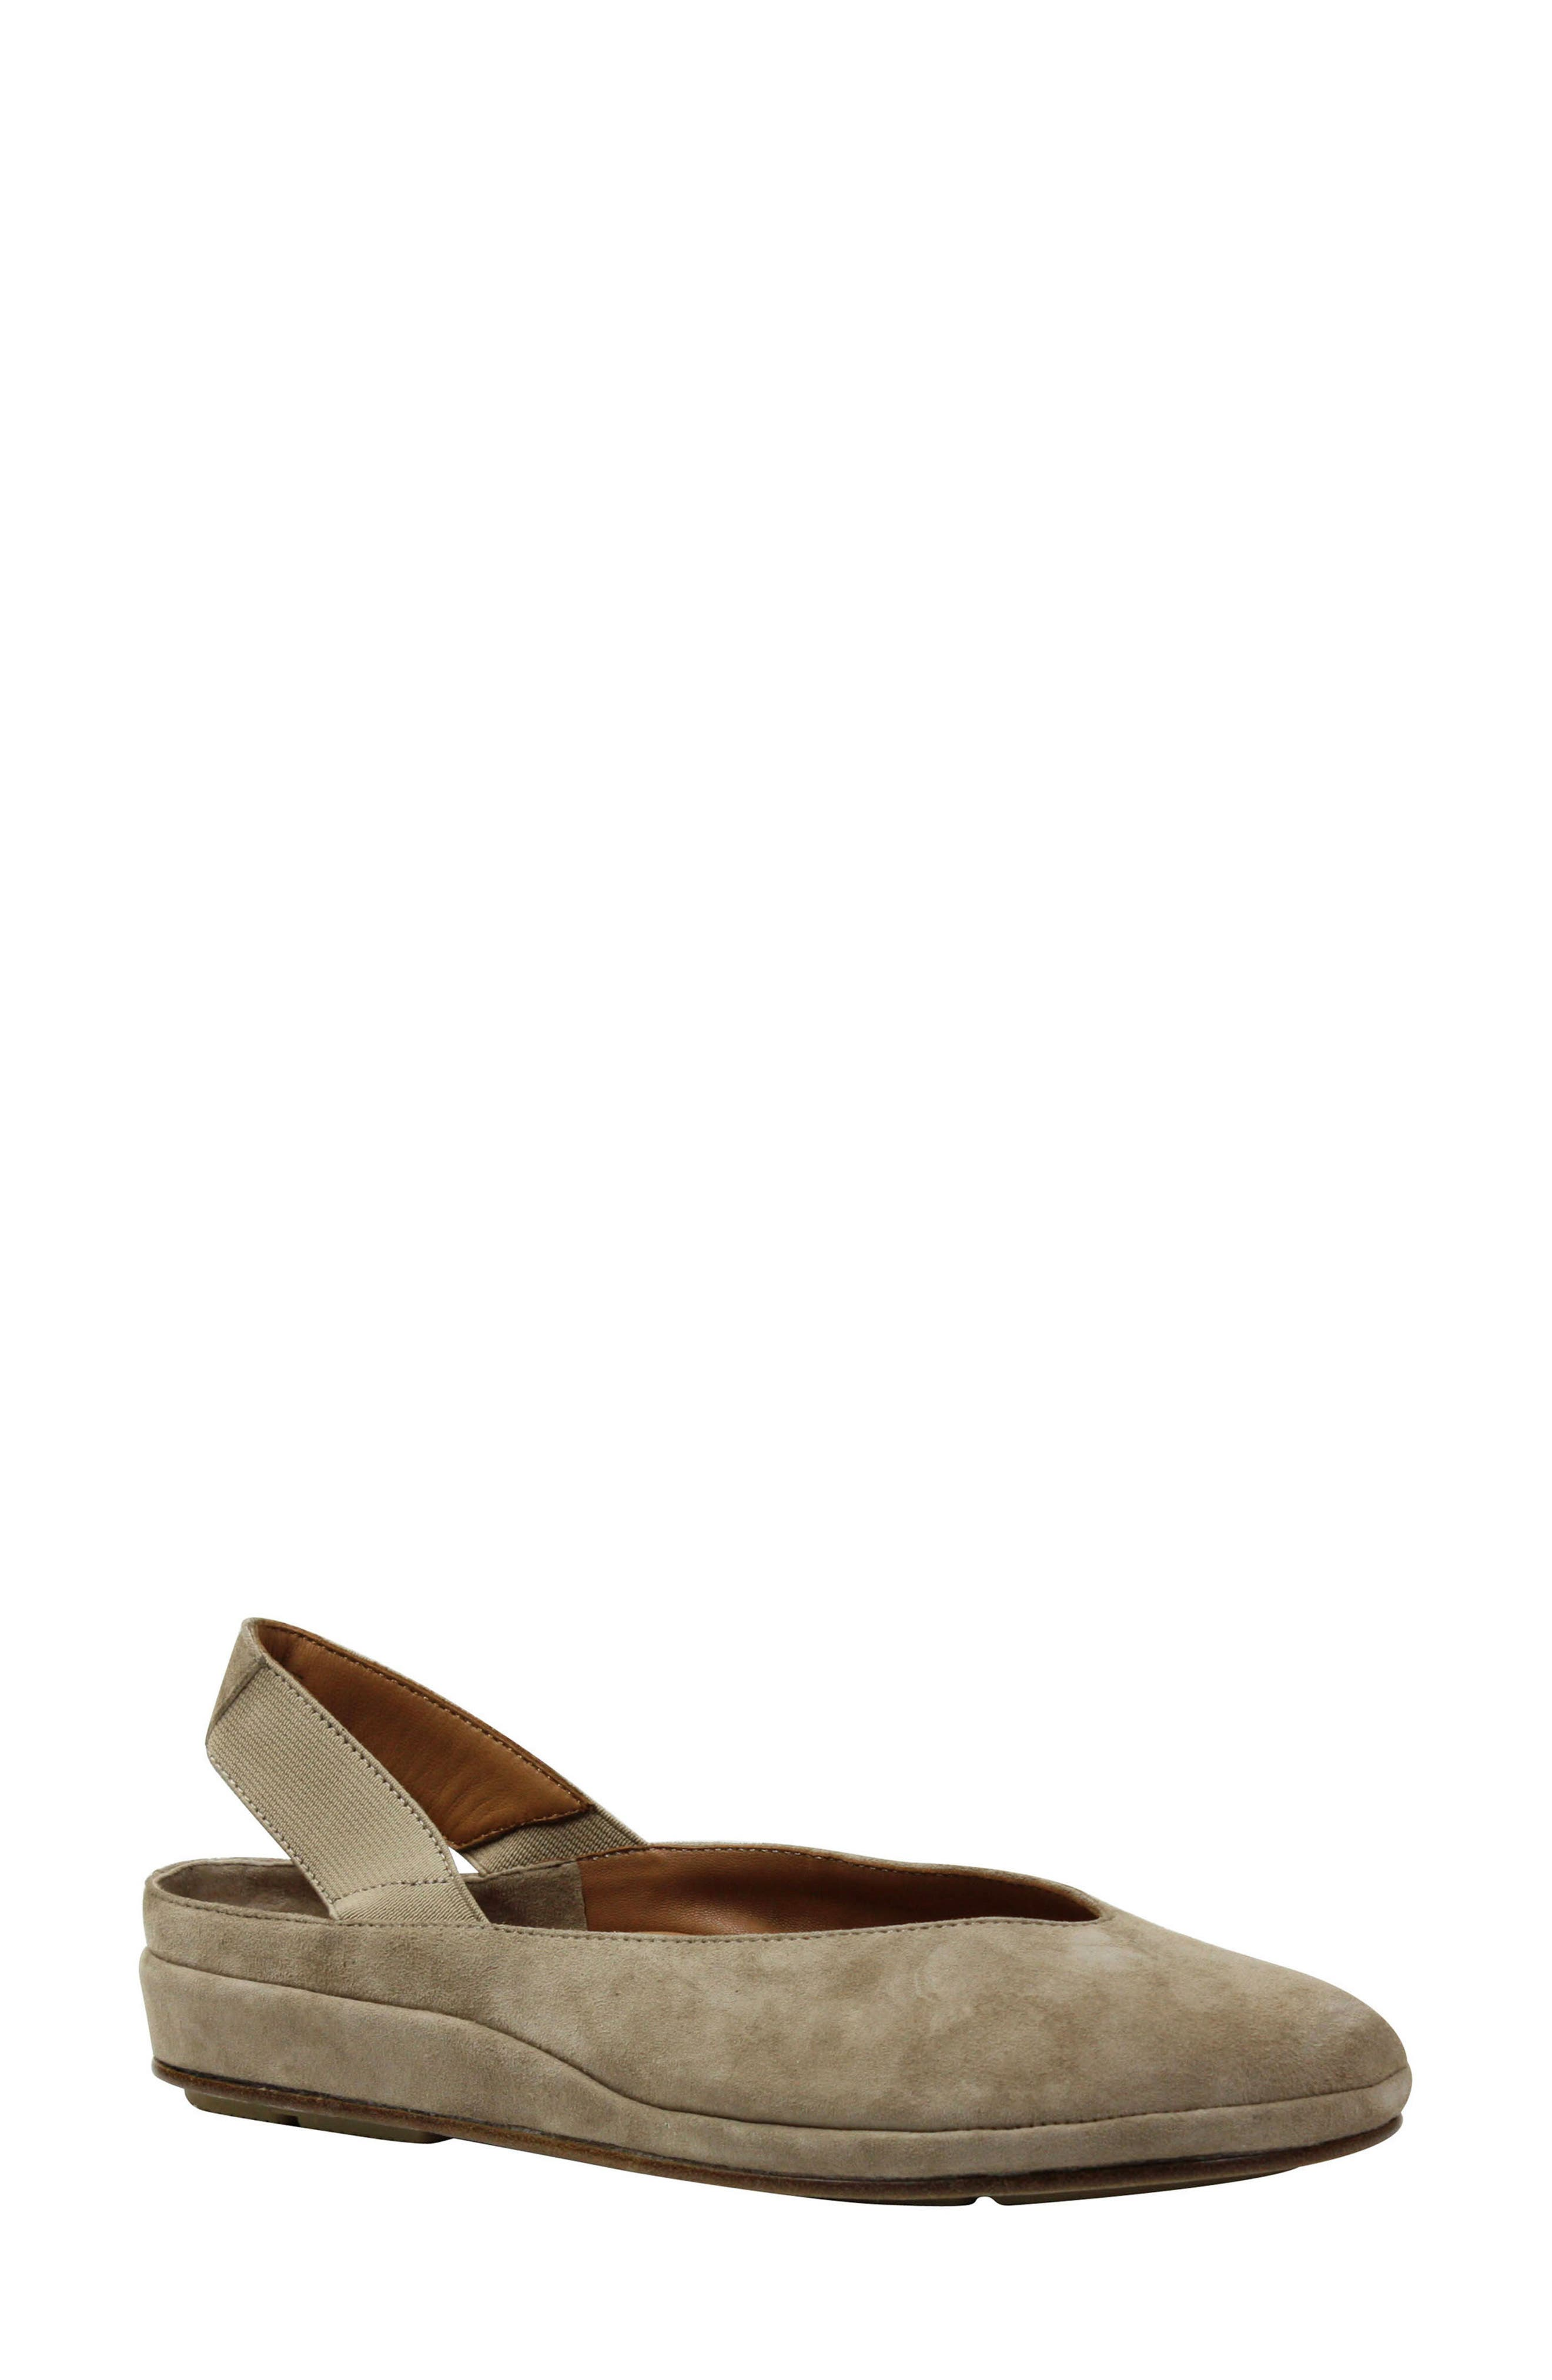 L'AMOUR DES PIEDS 'Cypris' Slingback Wedge, Main, color, TAUPE SUEDE